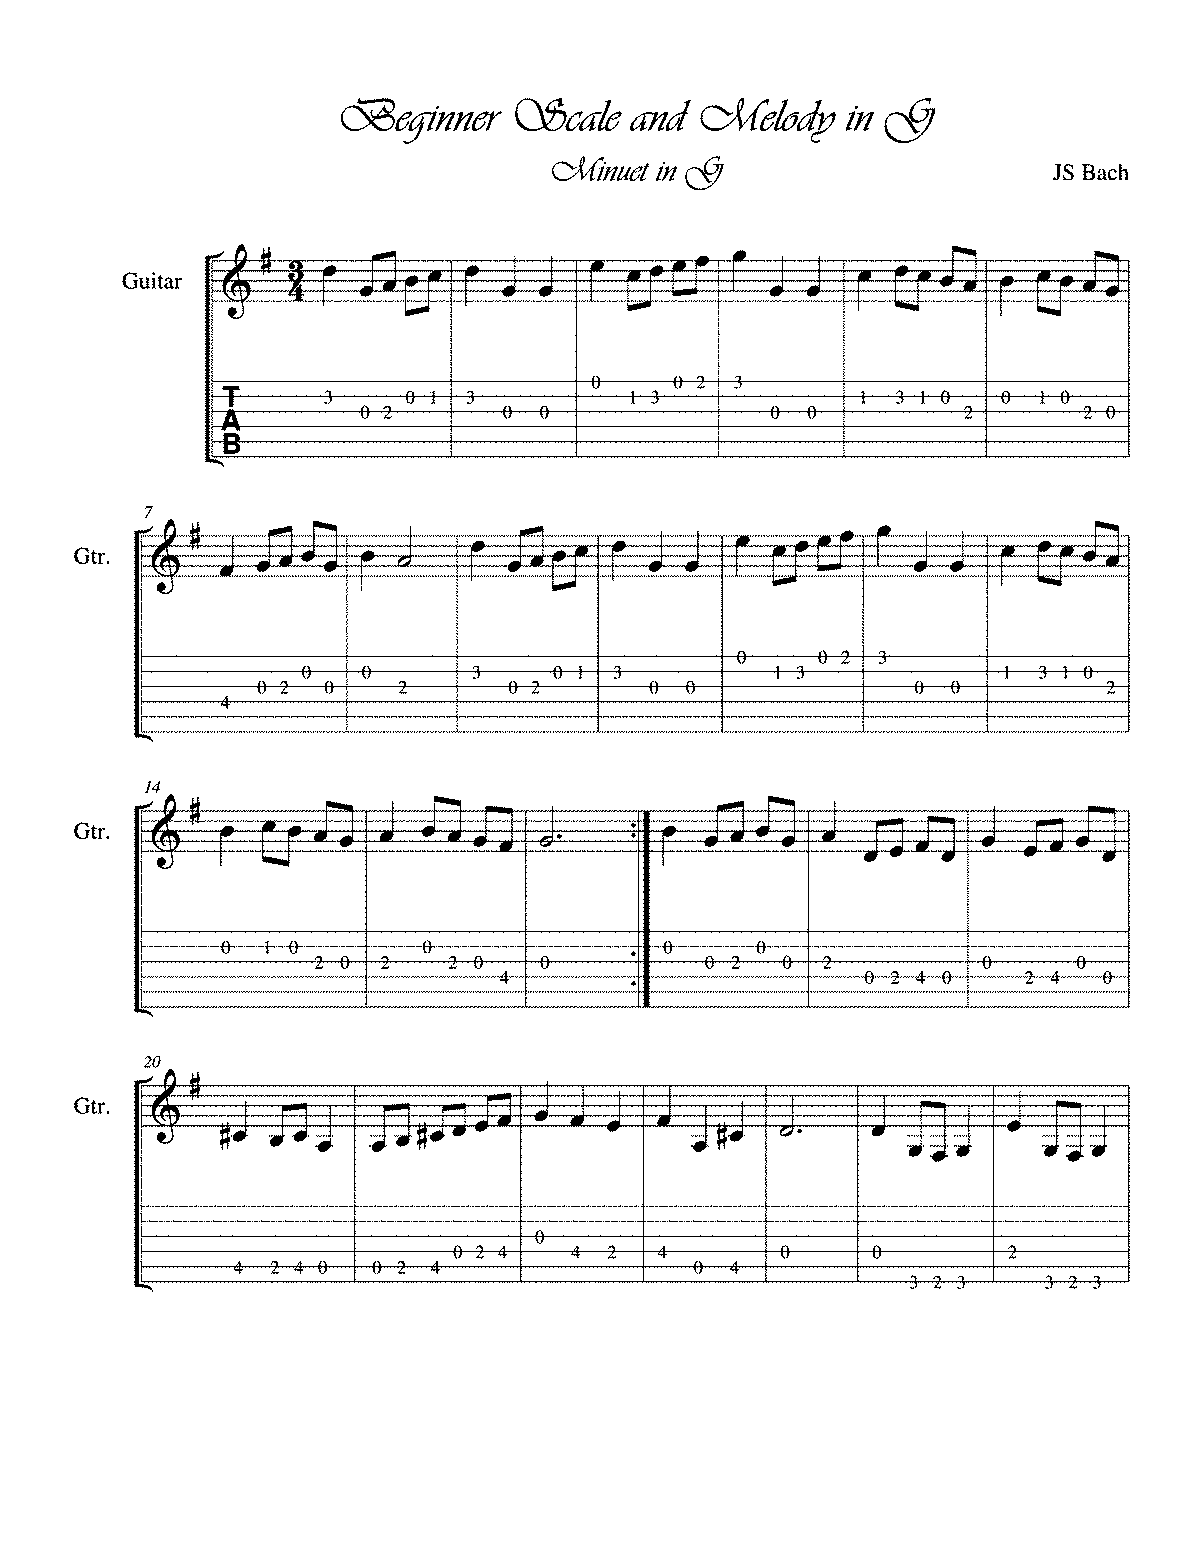 PMLP218492-Beginner guitar scale and melody in G Major.pdf